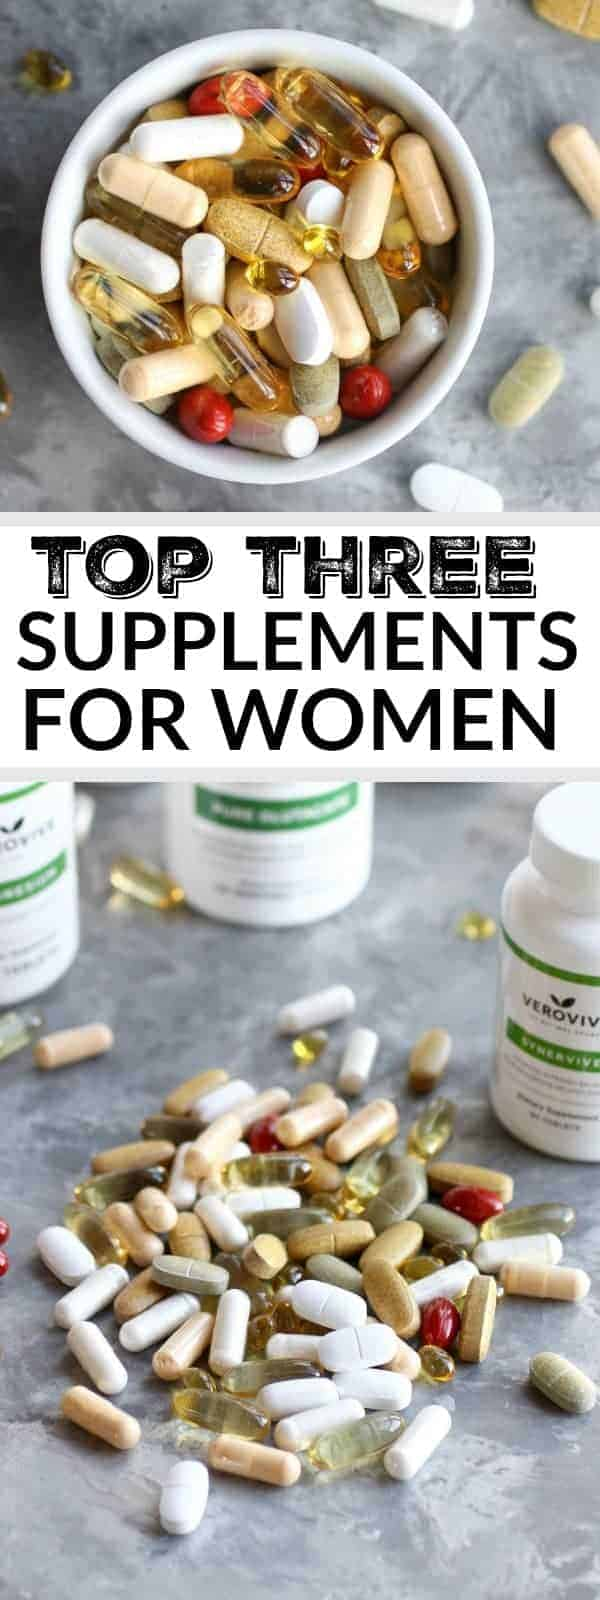 Top 3 Supplements for Women | healthy tips for women ] healthy living tips for women | best vitamins for women | womens vitamins | how to stay healthy with supplements || The Real Food Dietitians